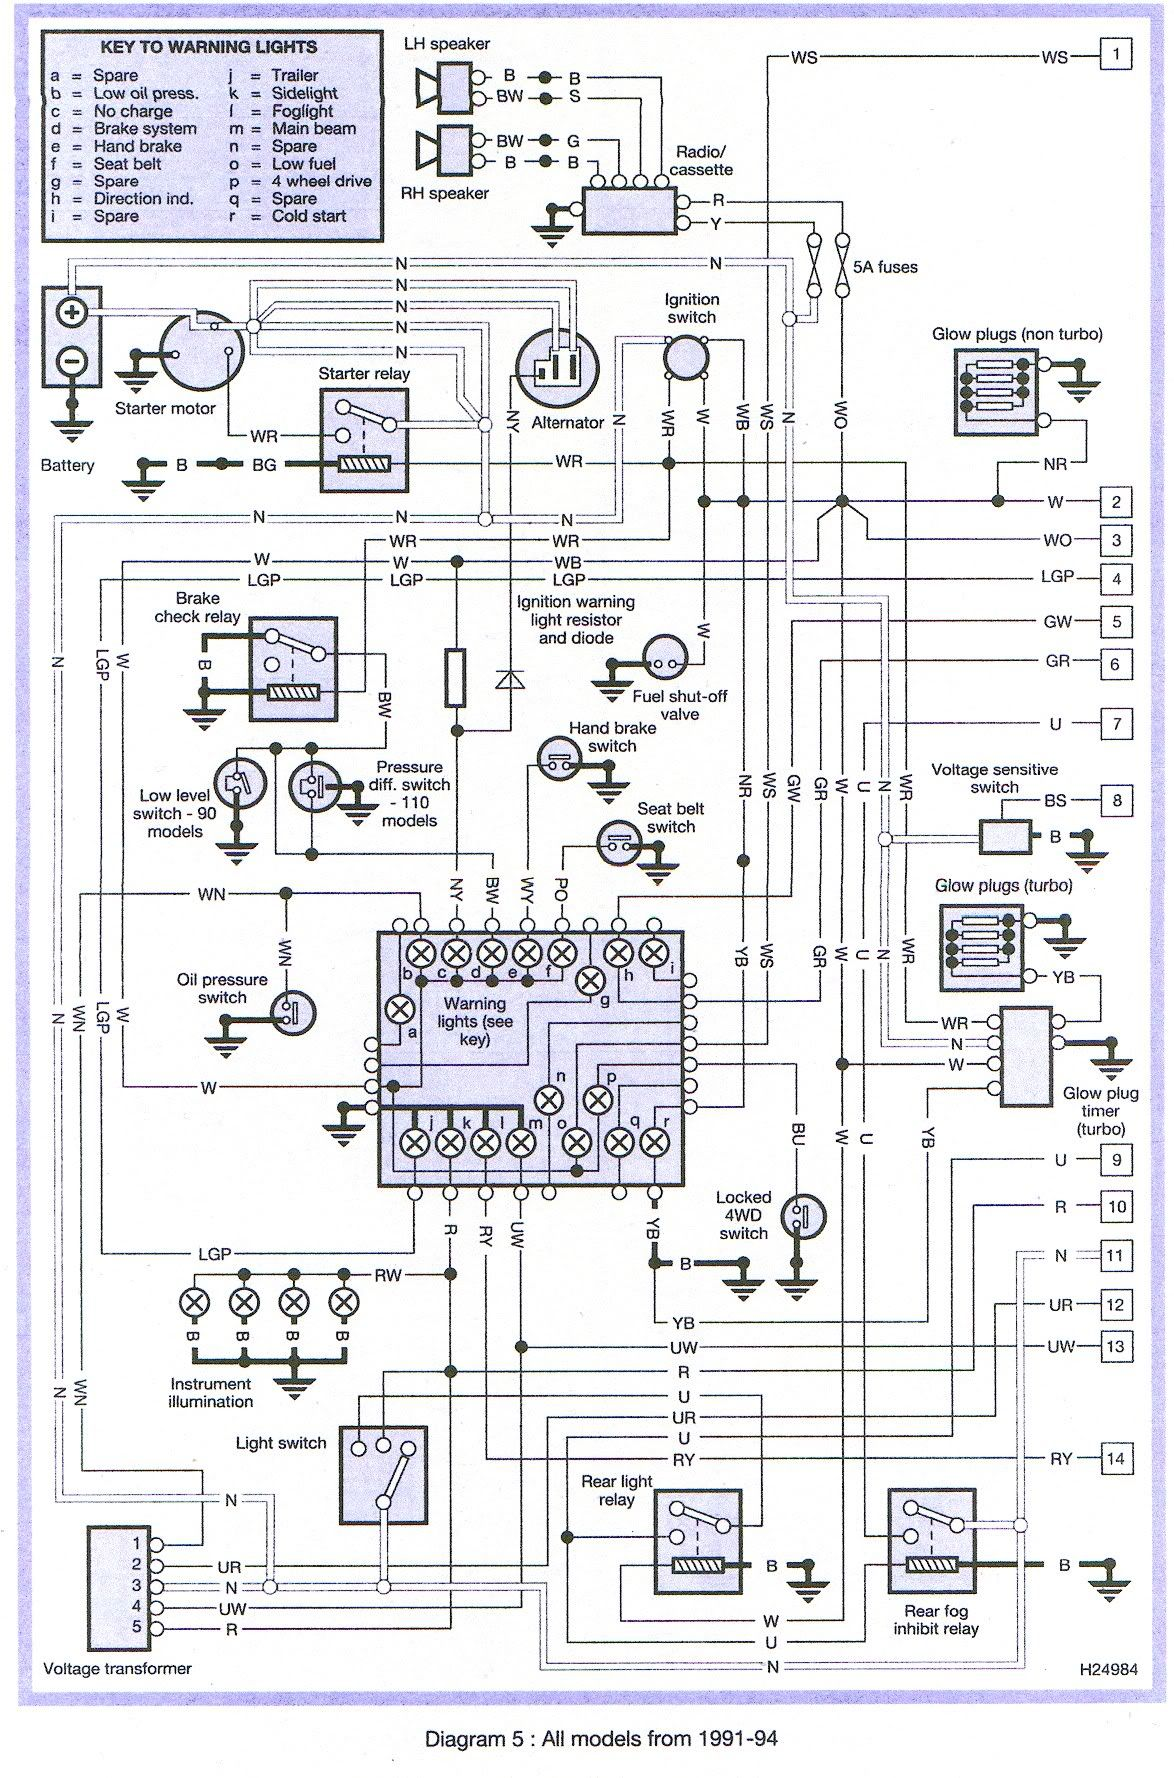 land rover headlight wiring wiring diagram sheetrange rover headlight wiring diagram 9 [ 1174 x 1778 Pixel ]